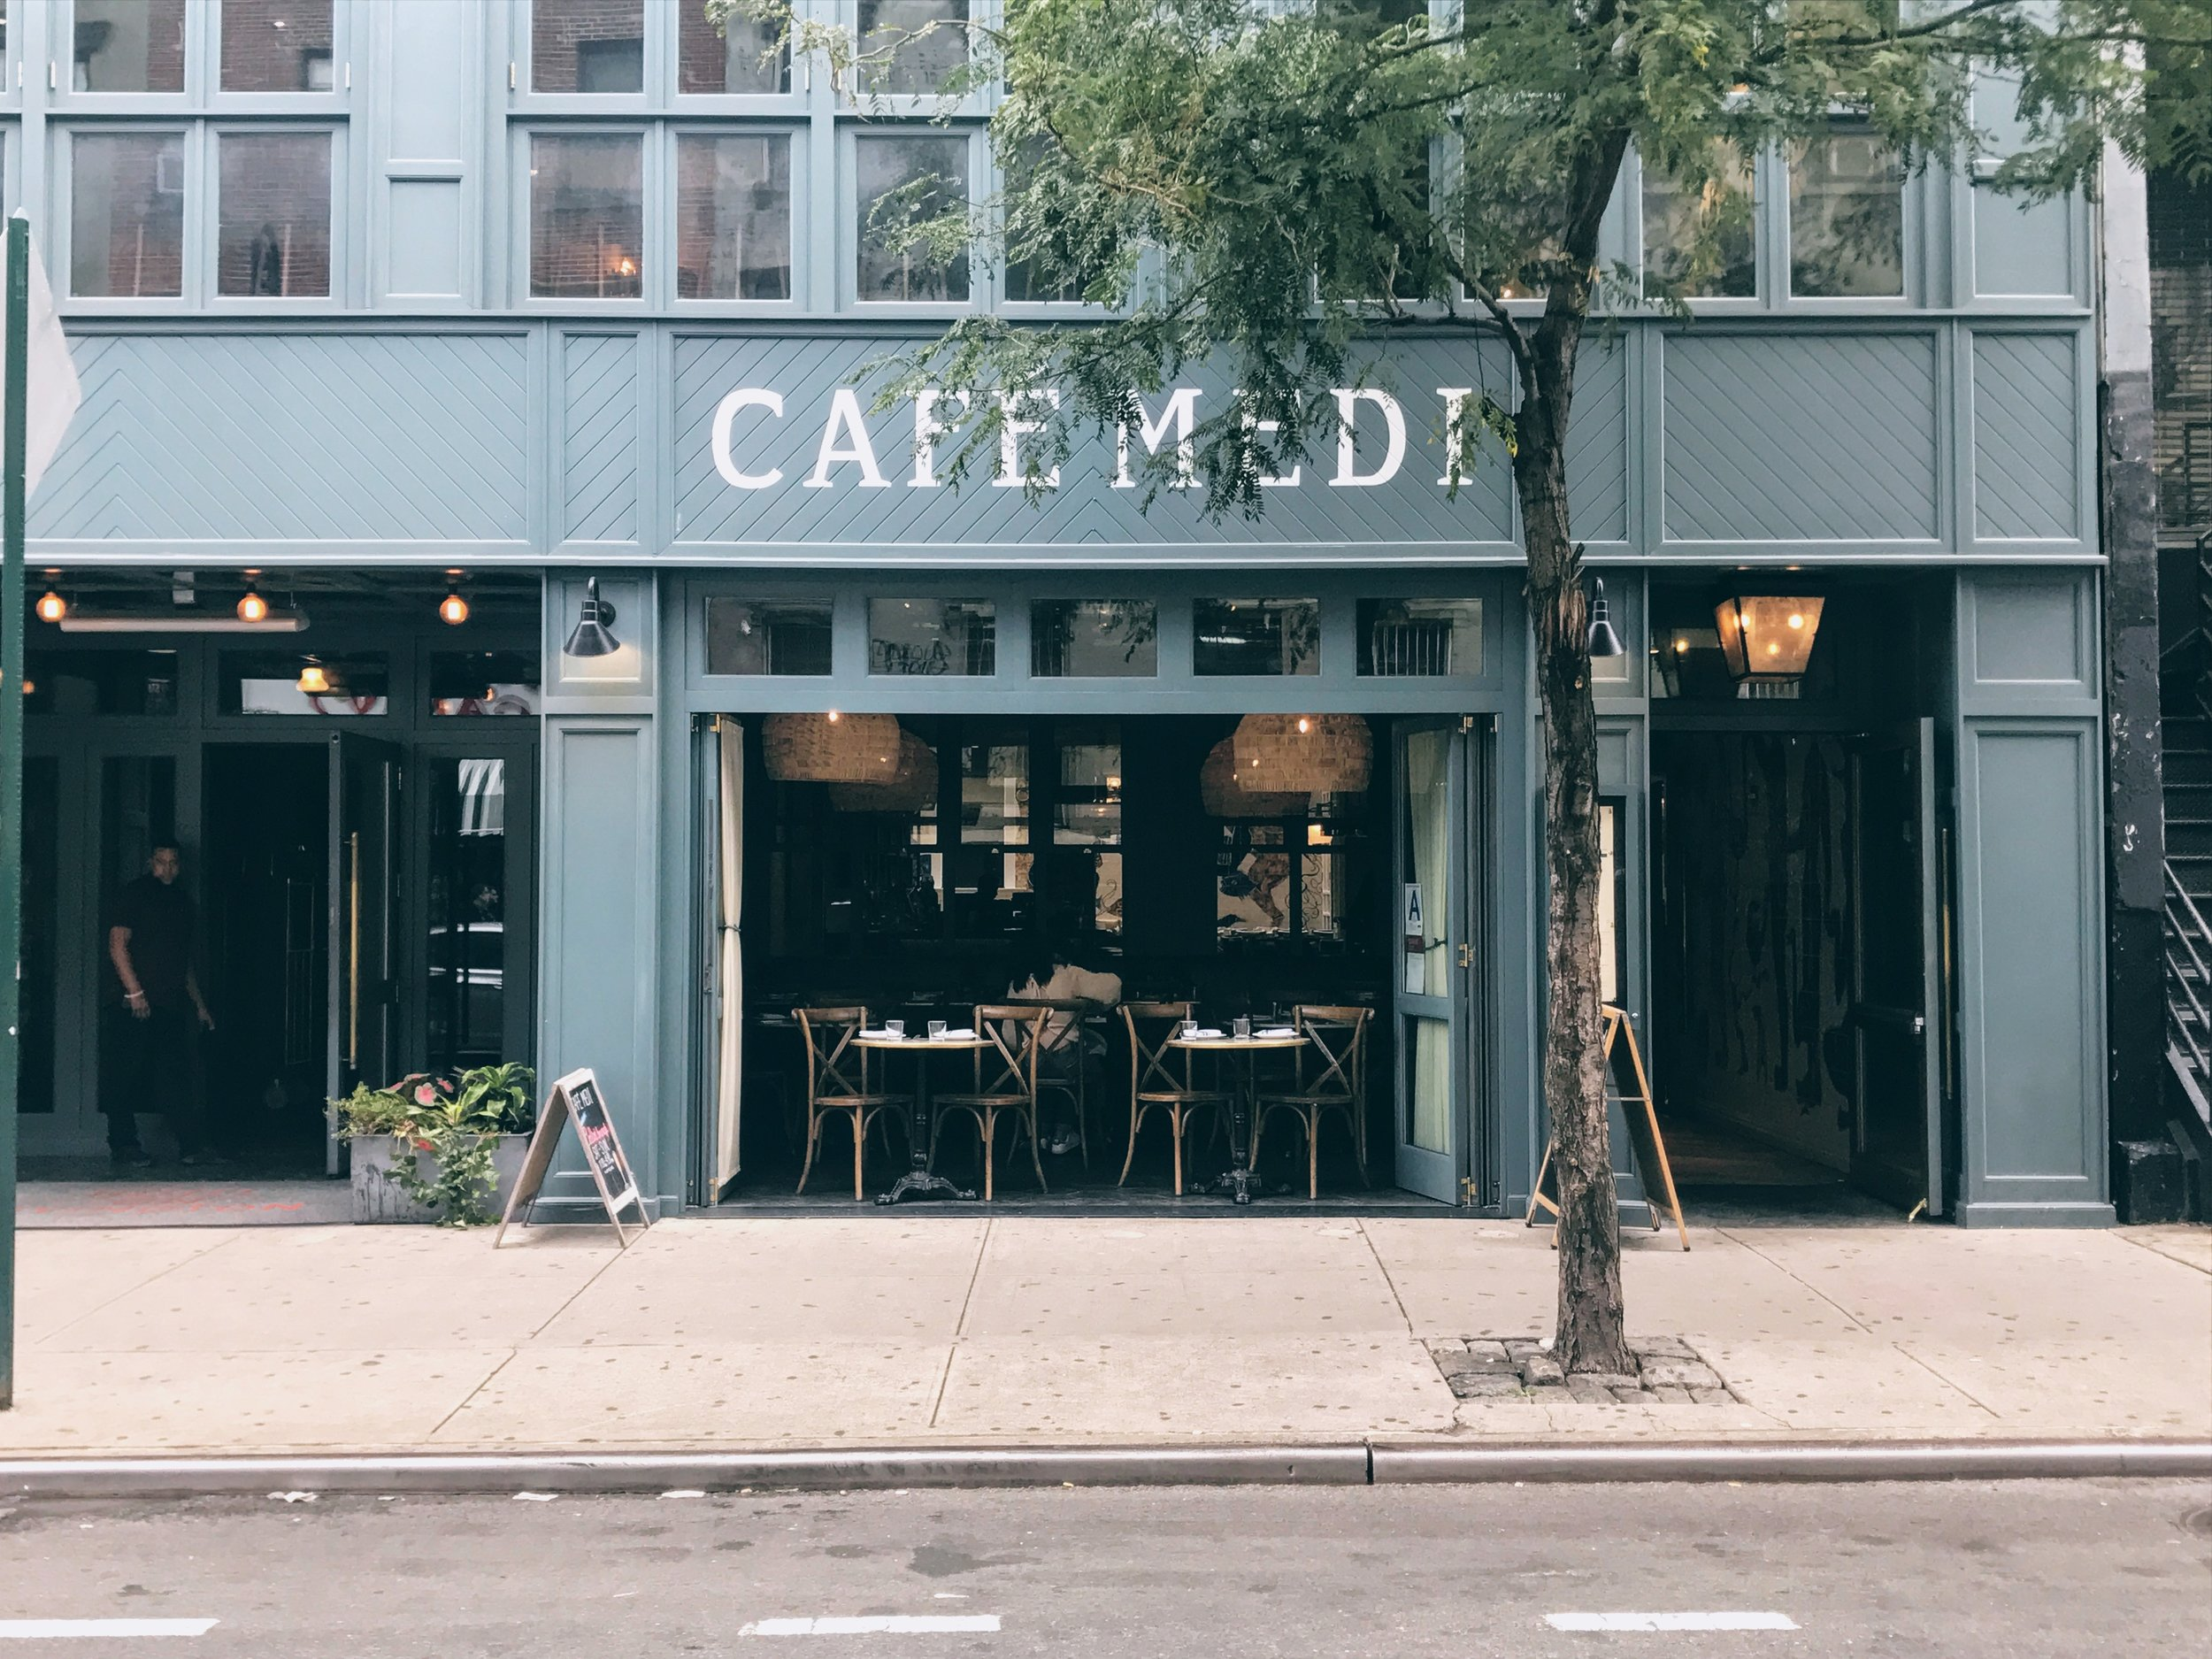 New York: Art, Mediterranean food and good vibes at Café Medi